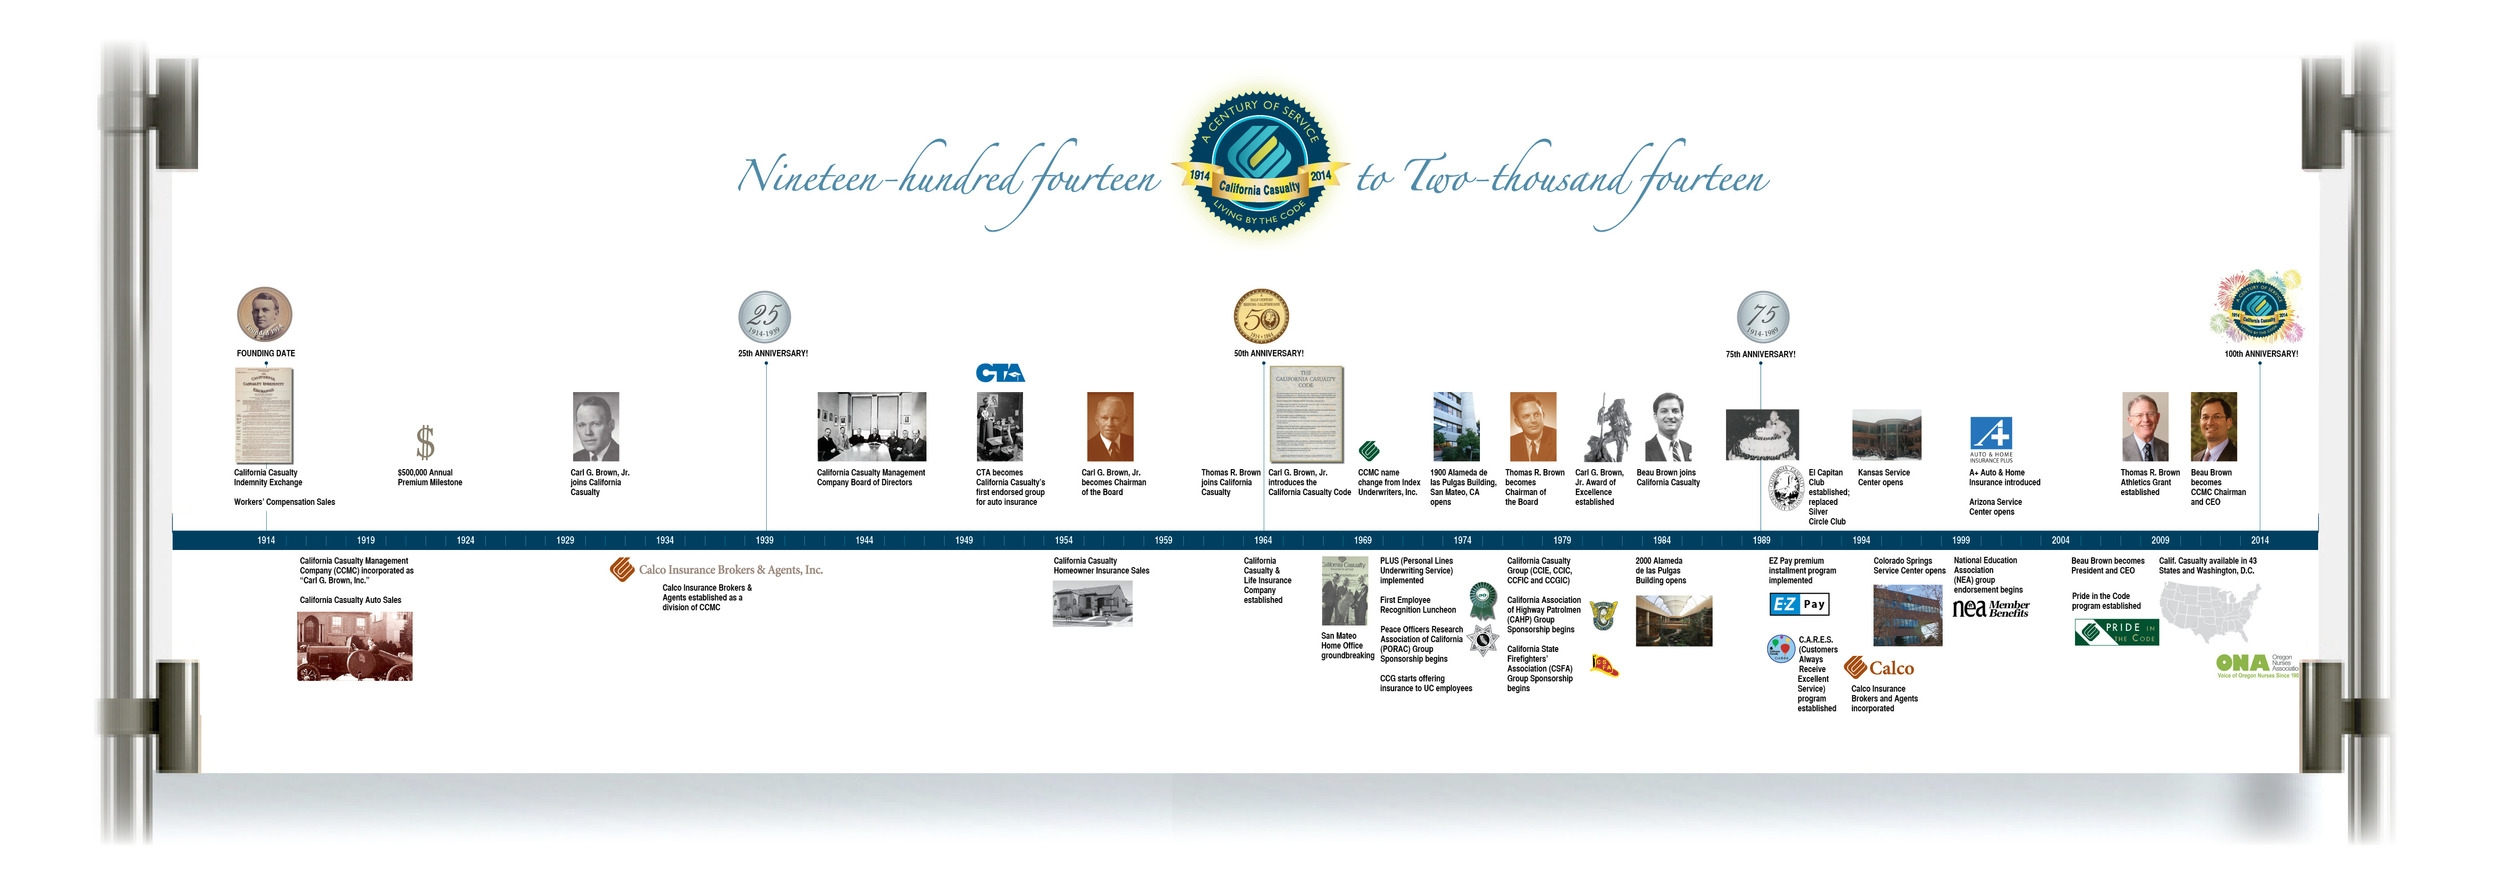 California Casualty 100 Year Celebration  -   California Casualty, an auto and home insurance company tailored to those who serve our communities, celebrated a century of service in 2014. A 100 year timeline commemorates key events throughout the company's history.